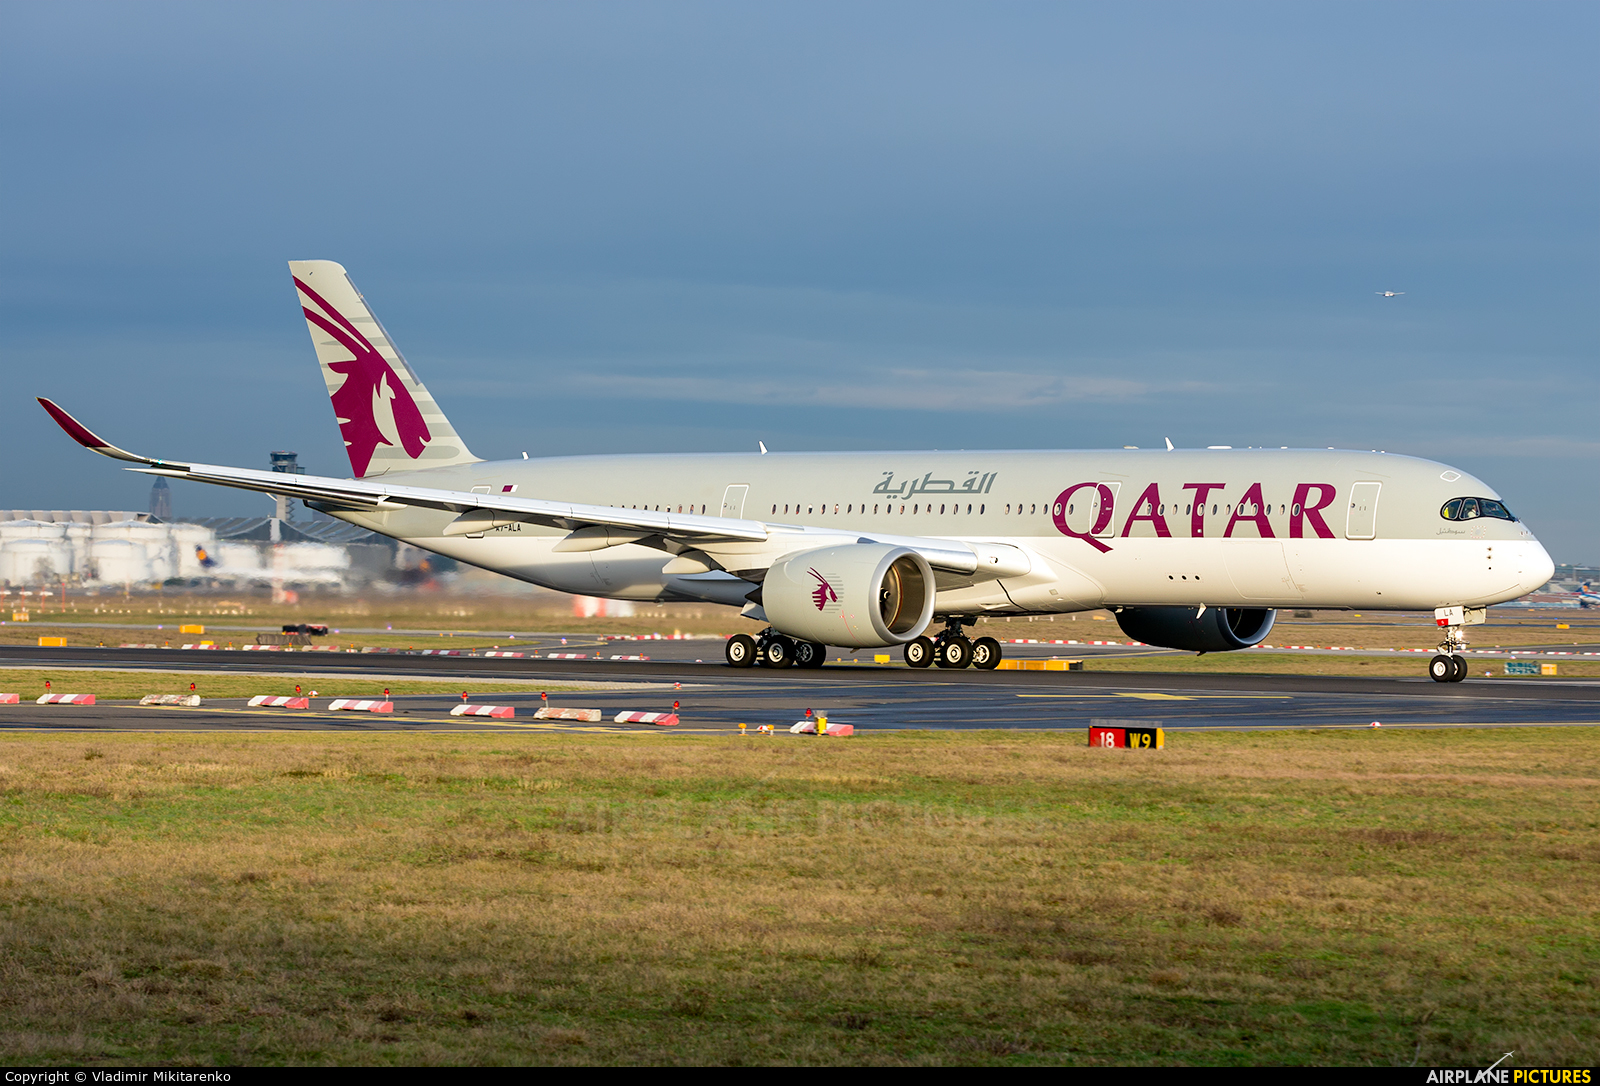 Qatar Airways A7-ALA aircraft at Frankfurt